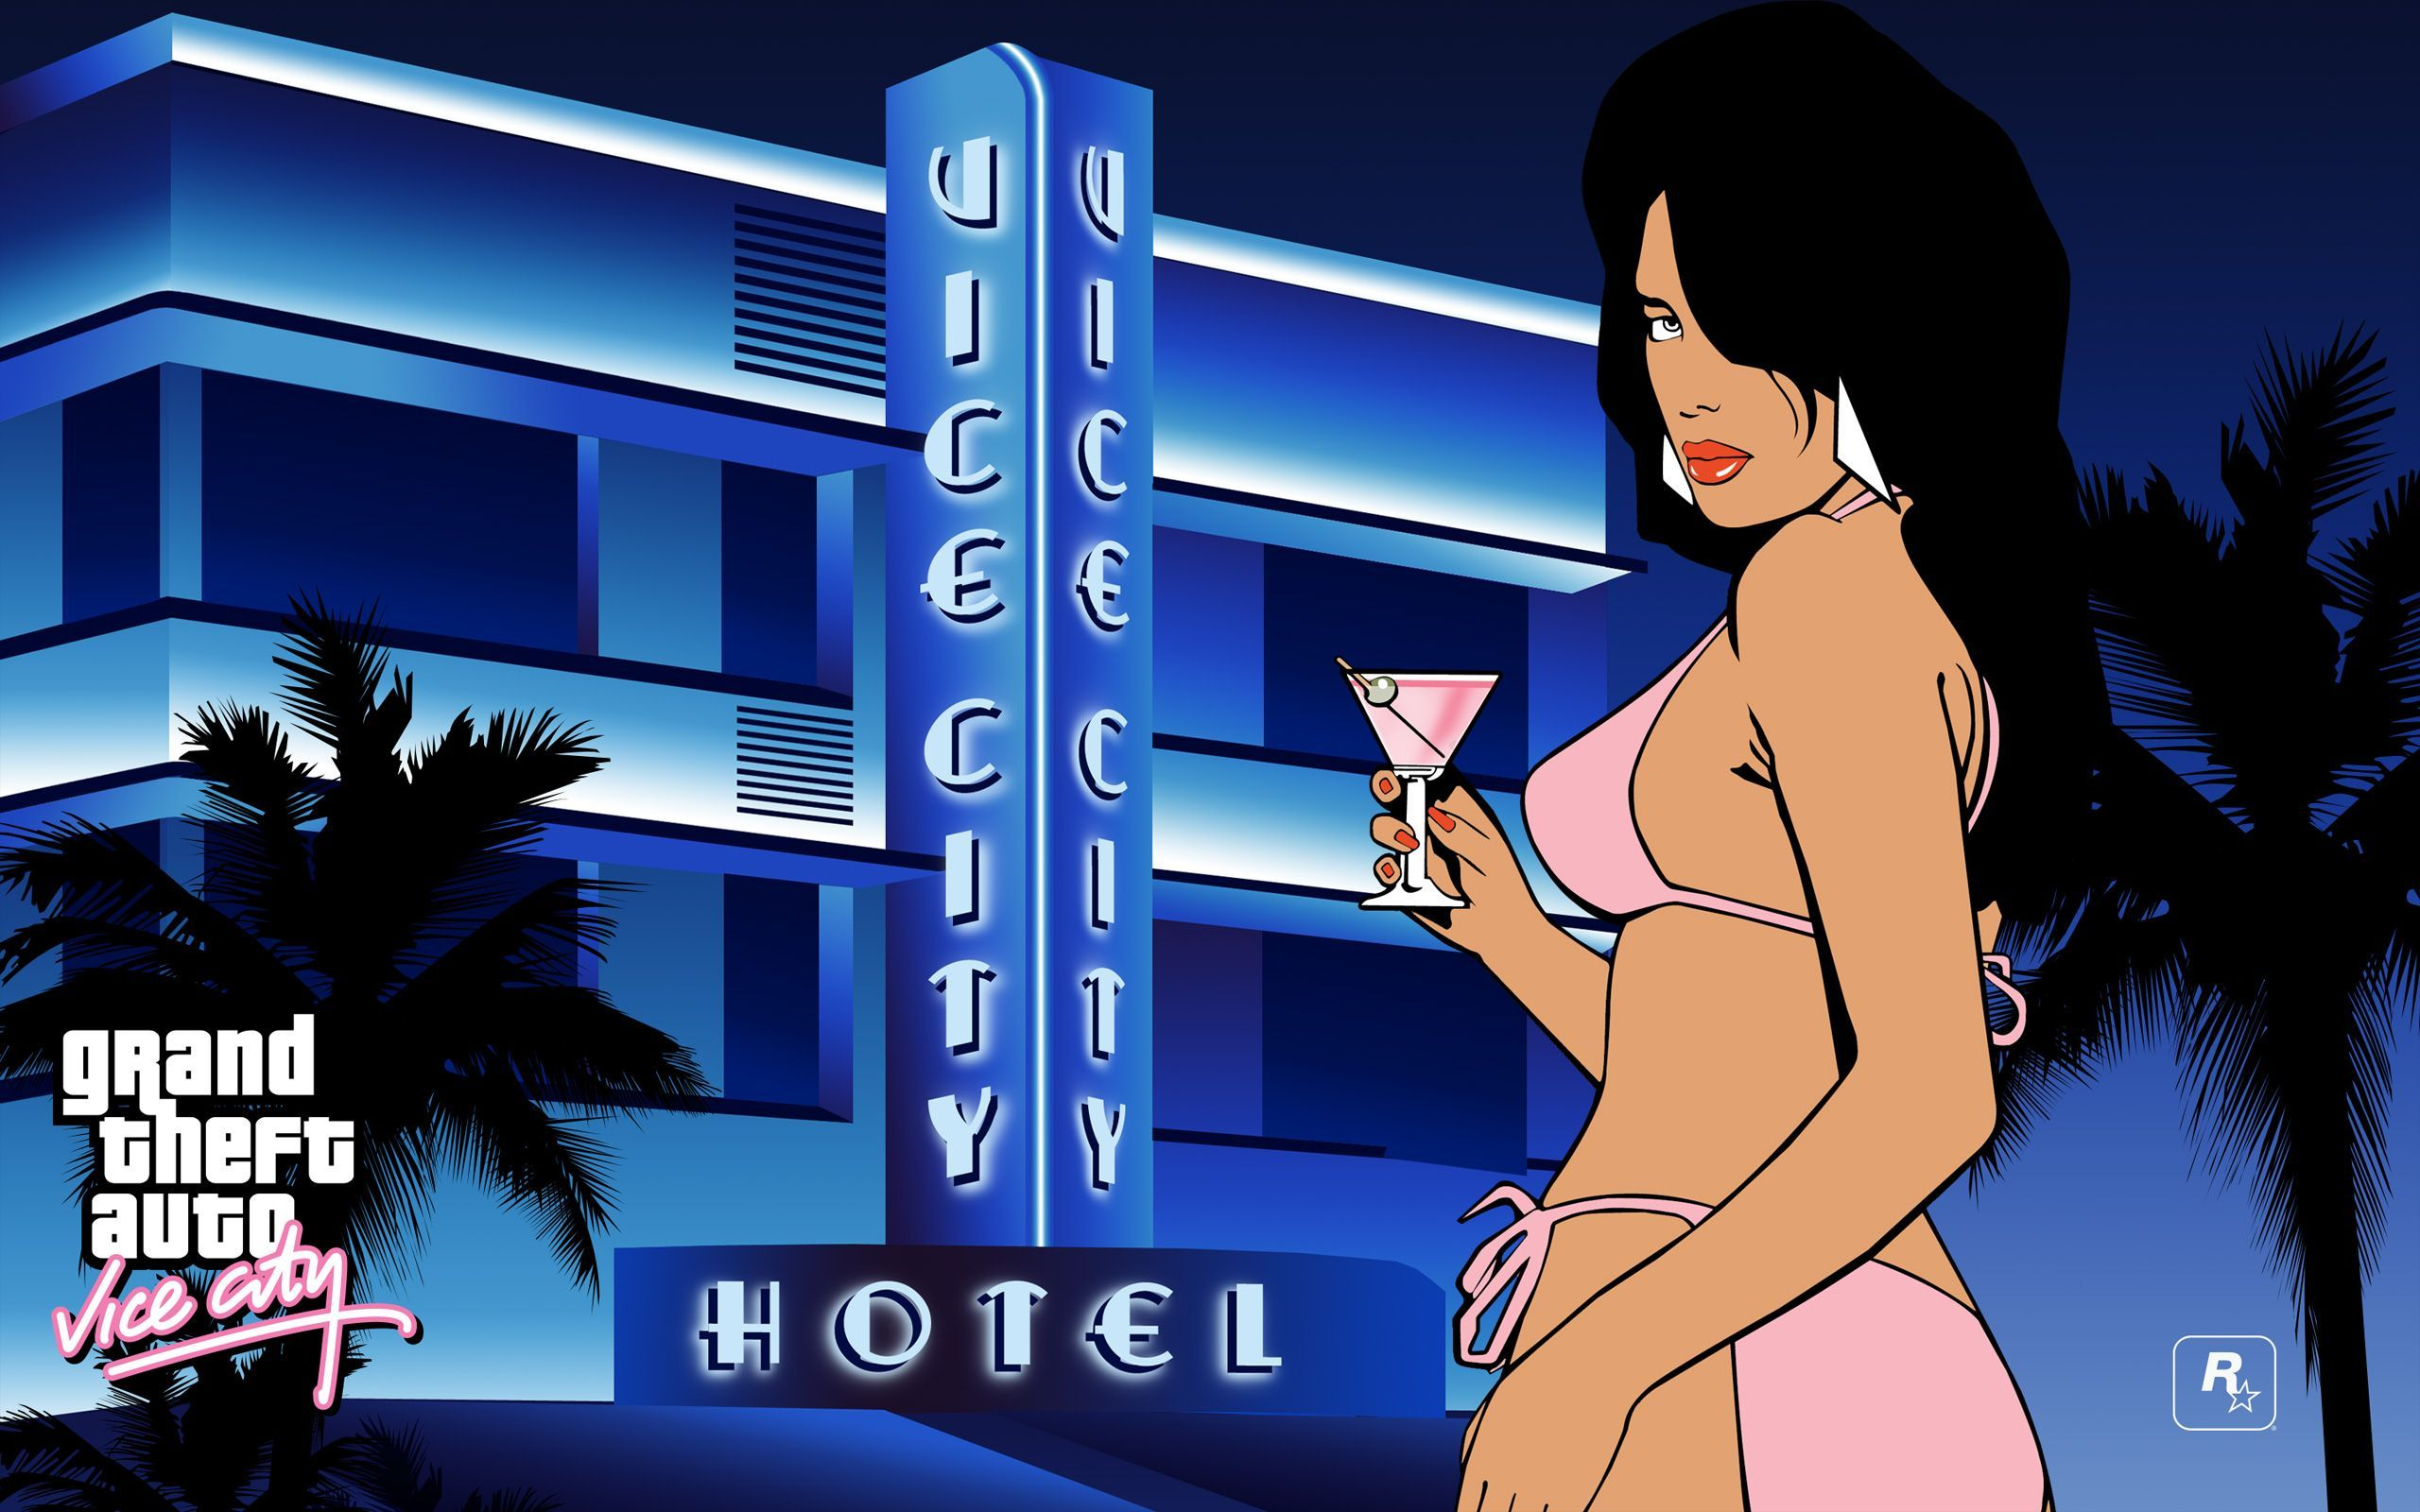 Gta vici city sex xxx exposed comics